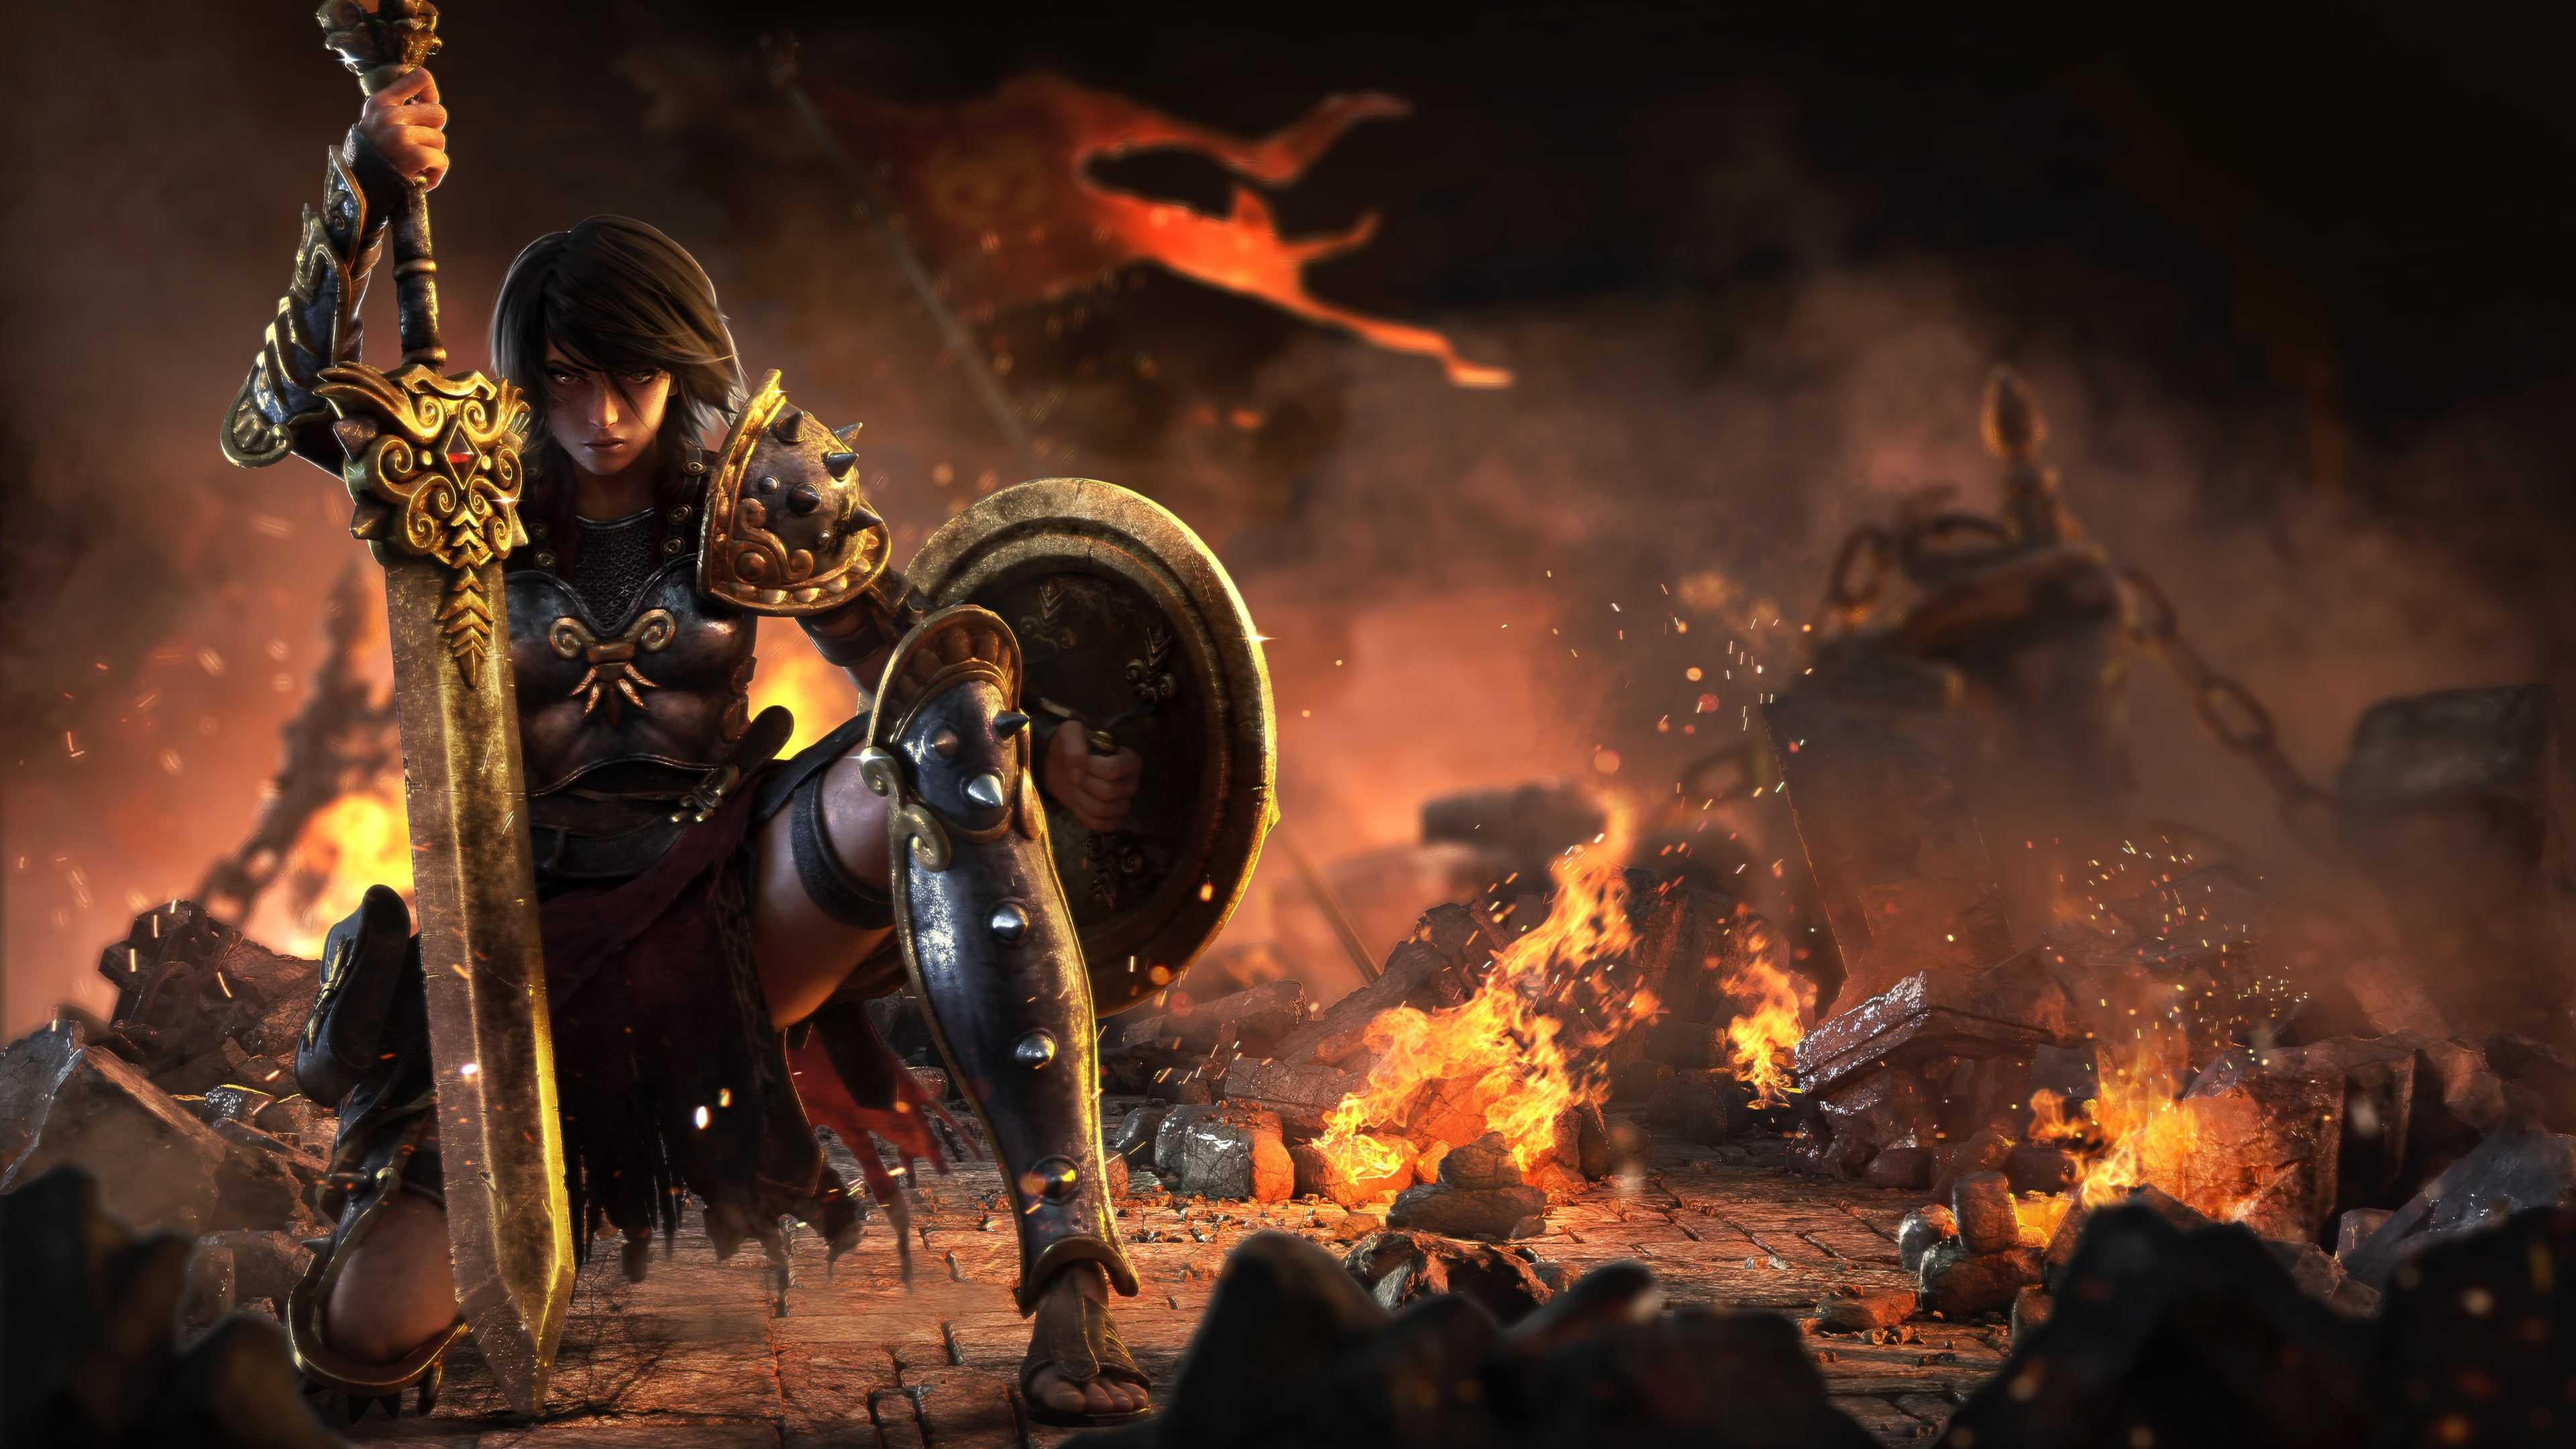 3 Bellona (smite) Hd Wallpapers  Background Images